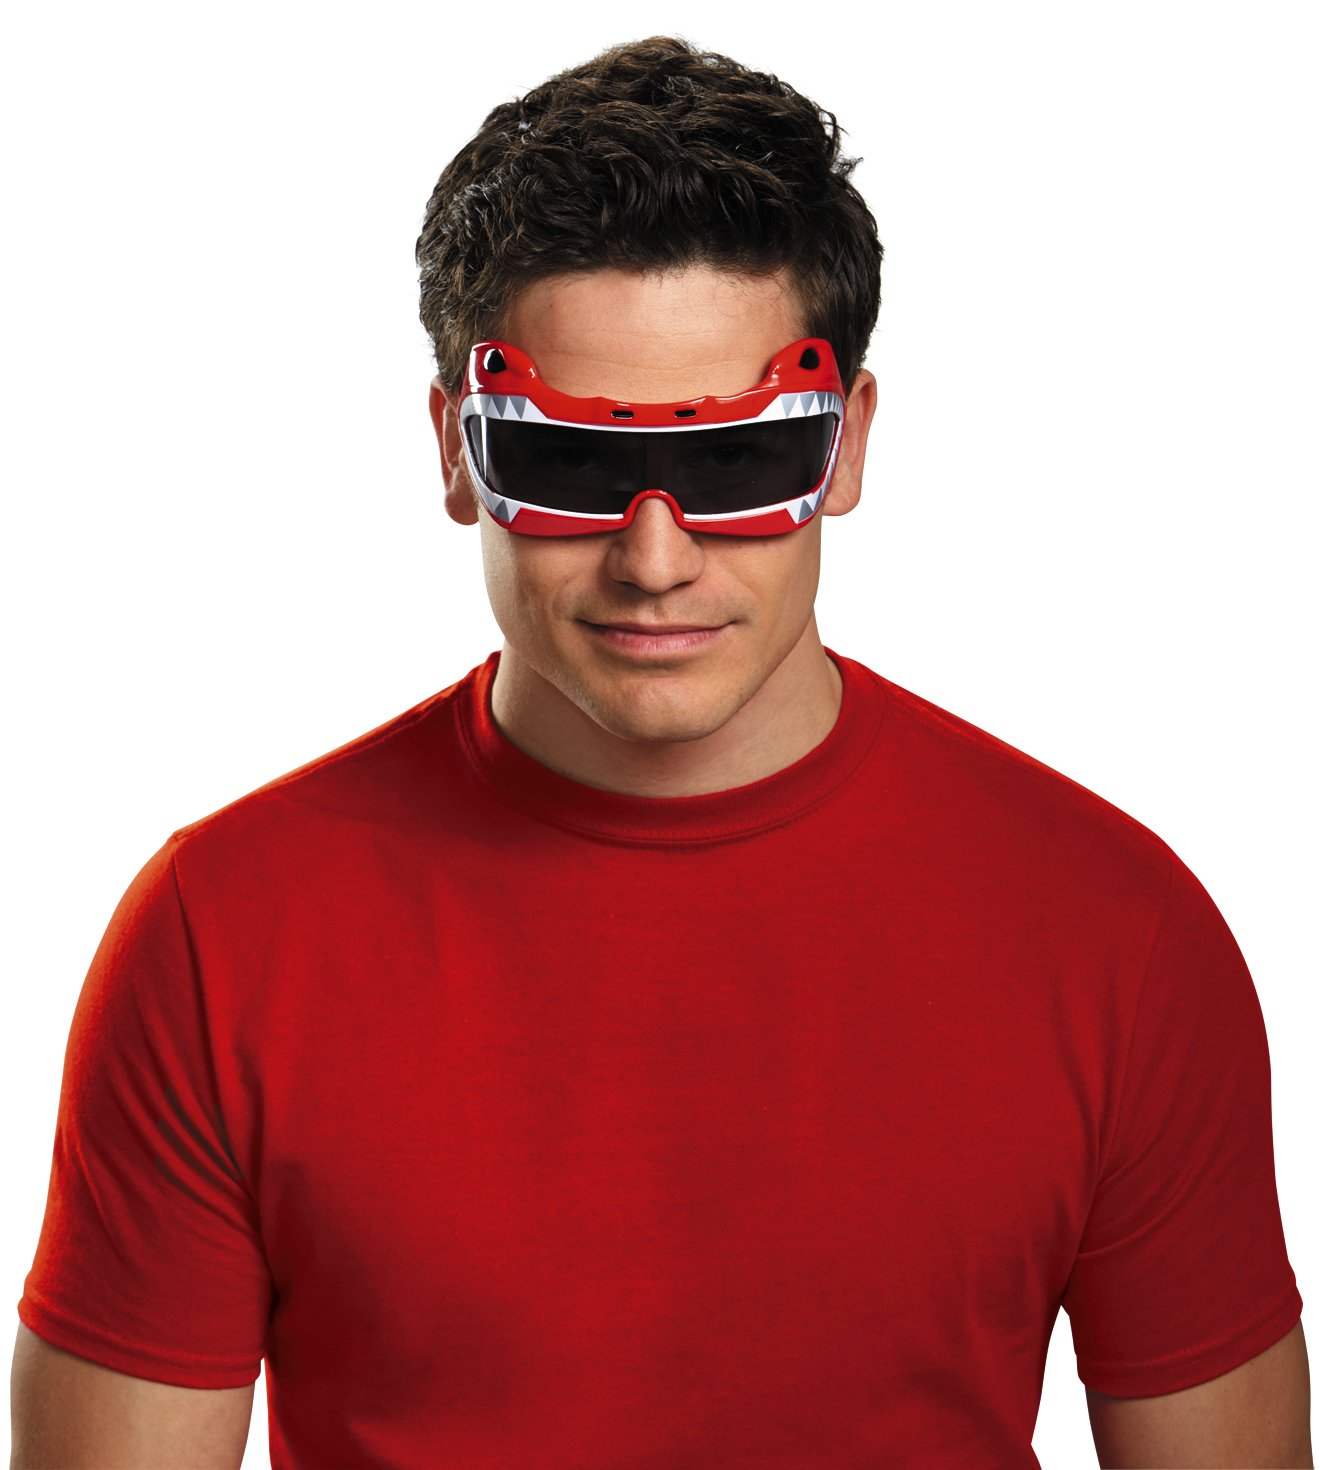 Disguise Men's Saban Mighty Morphin Red Ranger Costume Accessory Glasses by SABAN MIGHTY, available on amazon.com for $11.56 Kylie Jenner Sunglasses Exact Product